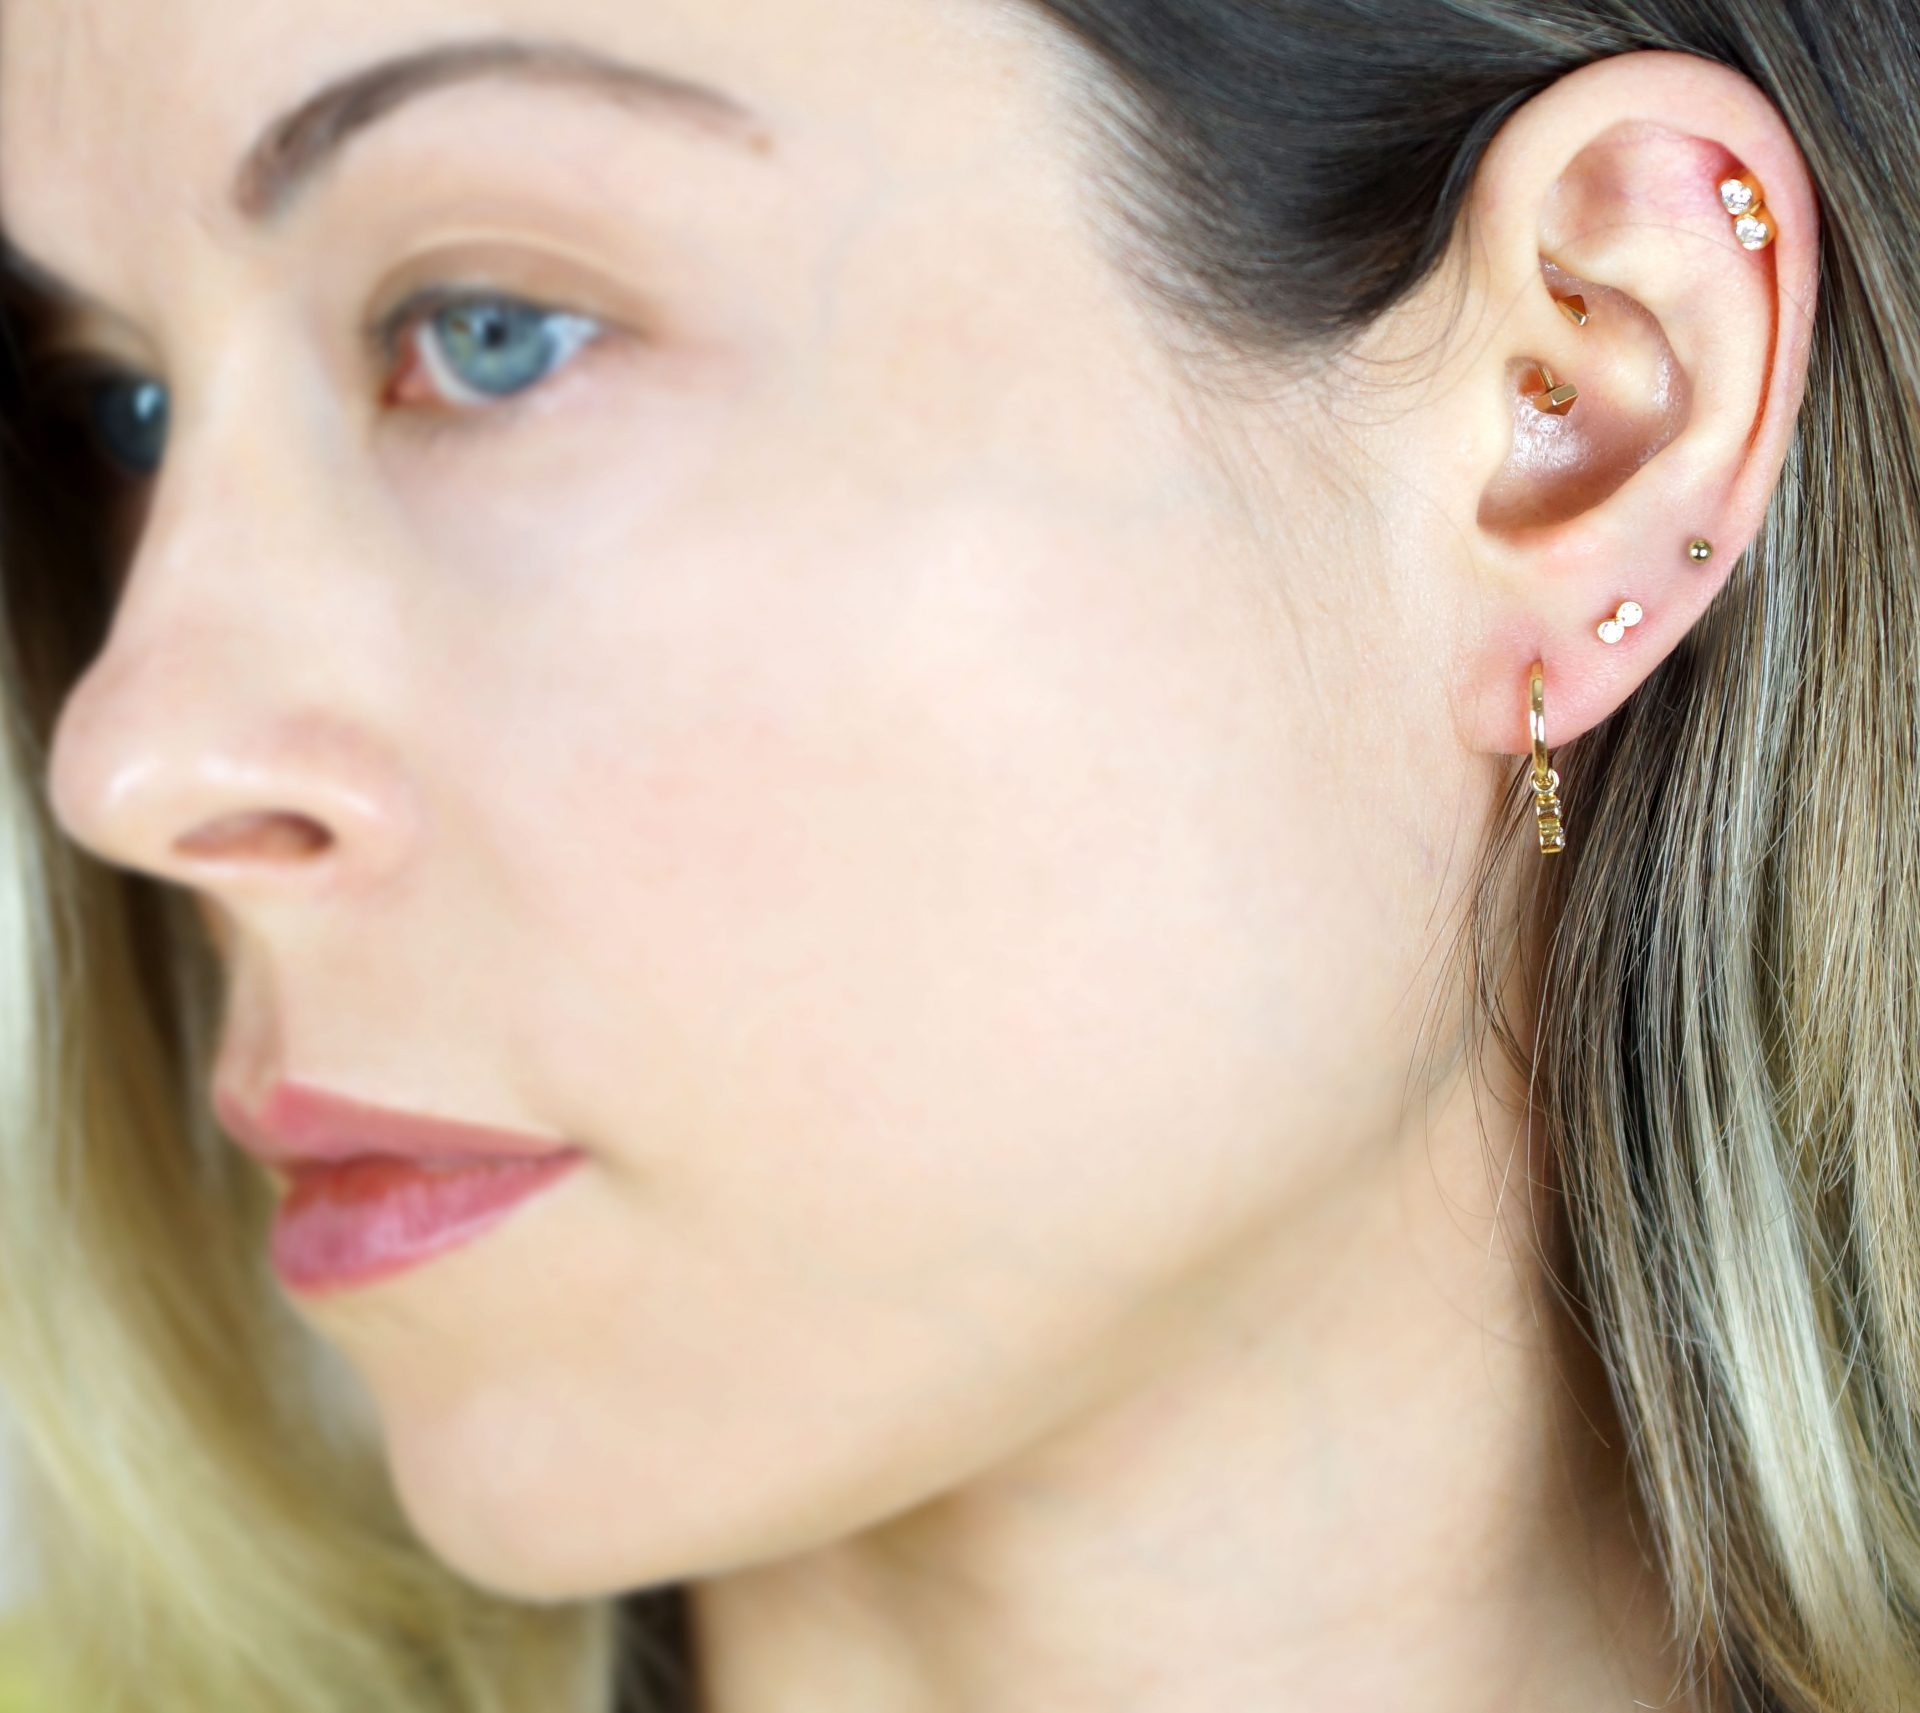 stacking combos of large diamond studs in simple shapes mixed with hoop stacks or go for a combination of miniature studs along with threader earrings